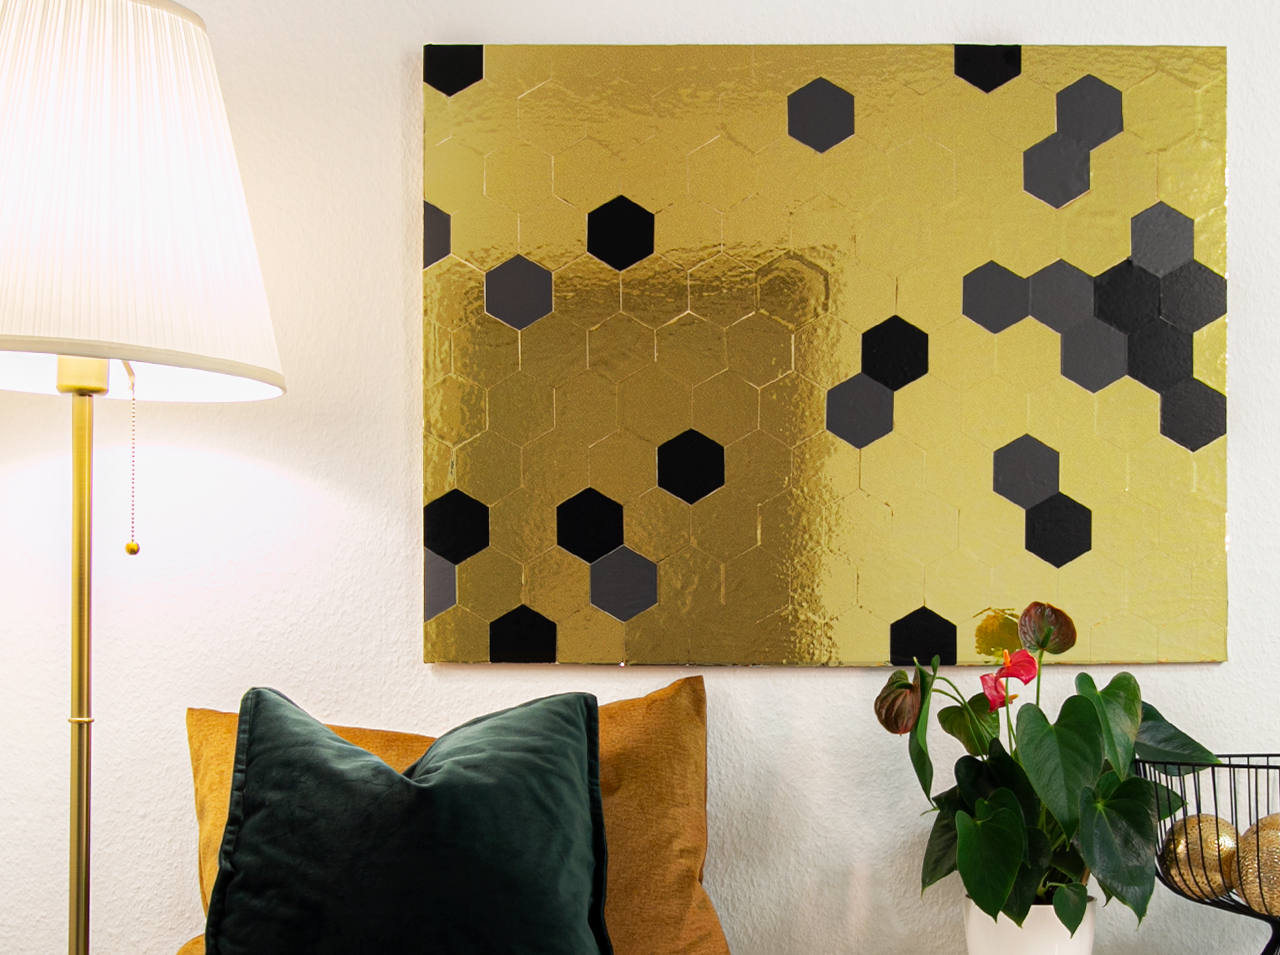 DIY geometric wall design of honeycomb shaped wooden panels made of d-c-fix® film in gold, anthracite and black.